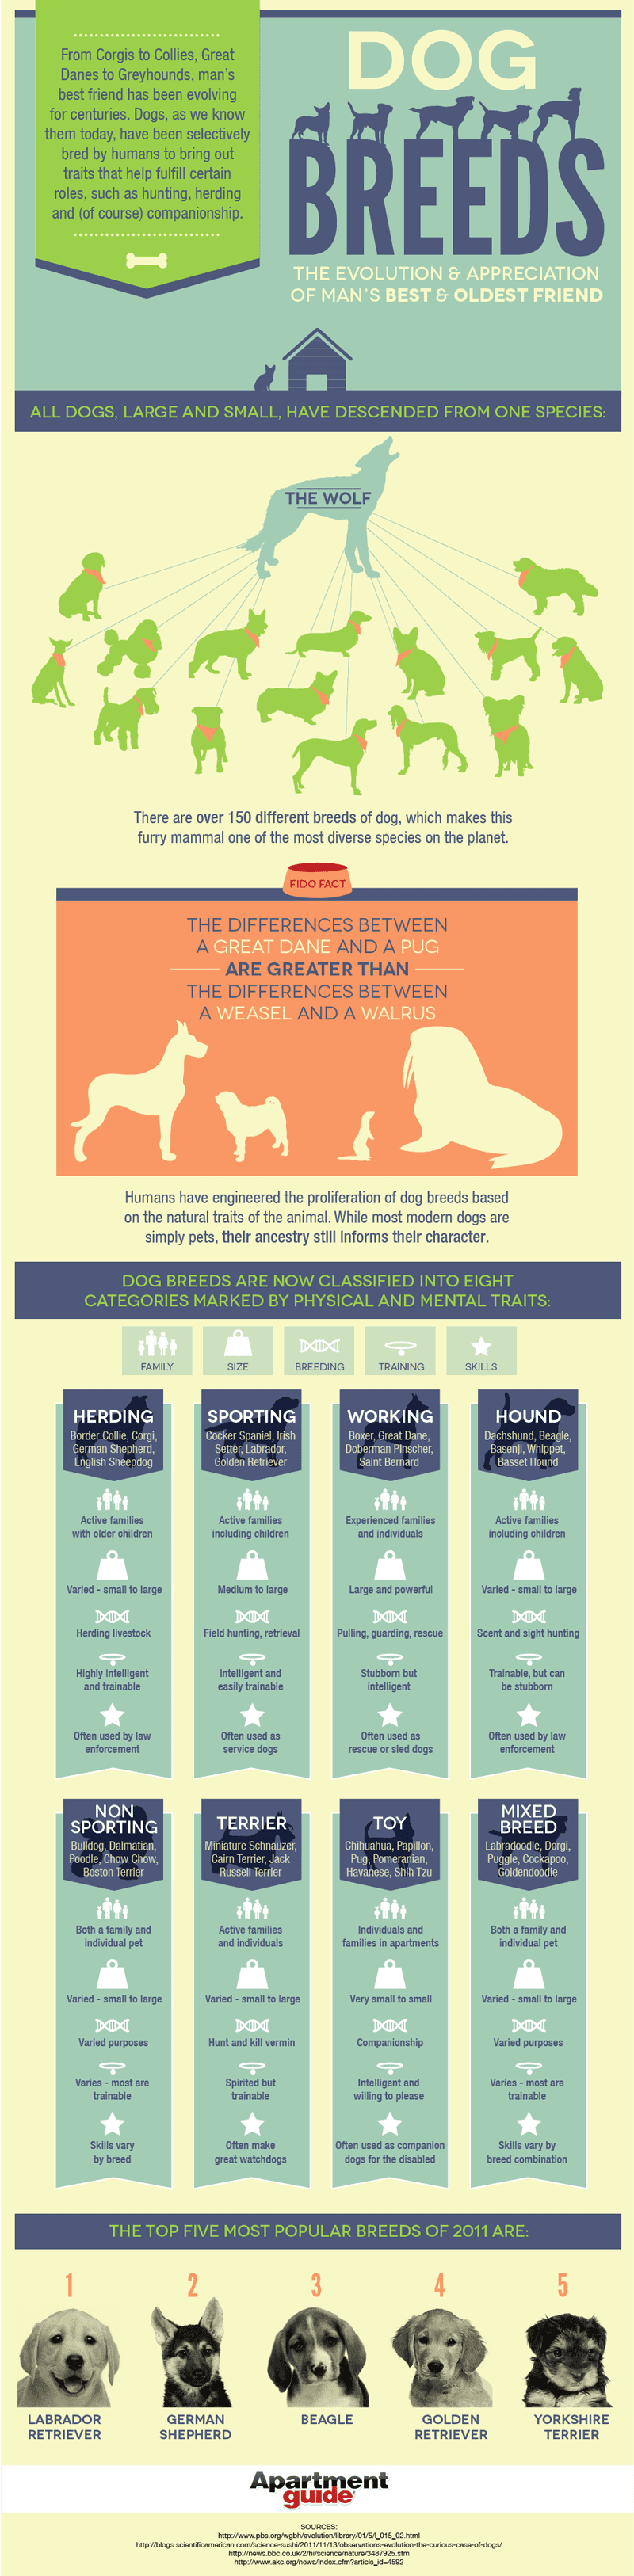 Dog-friendly apartment breeds